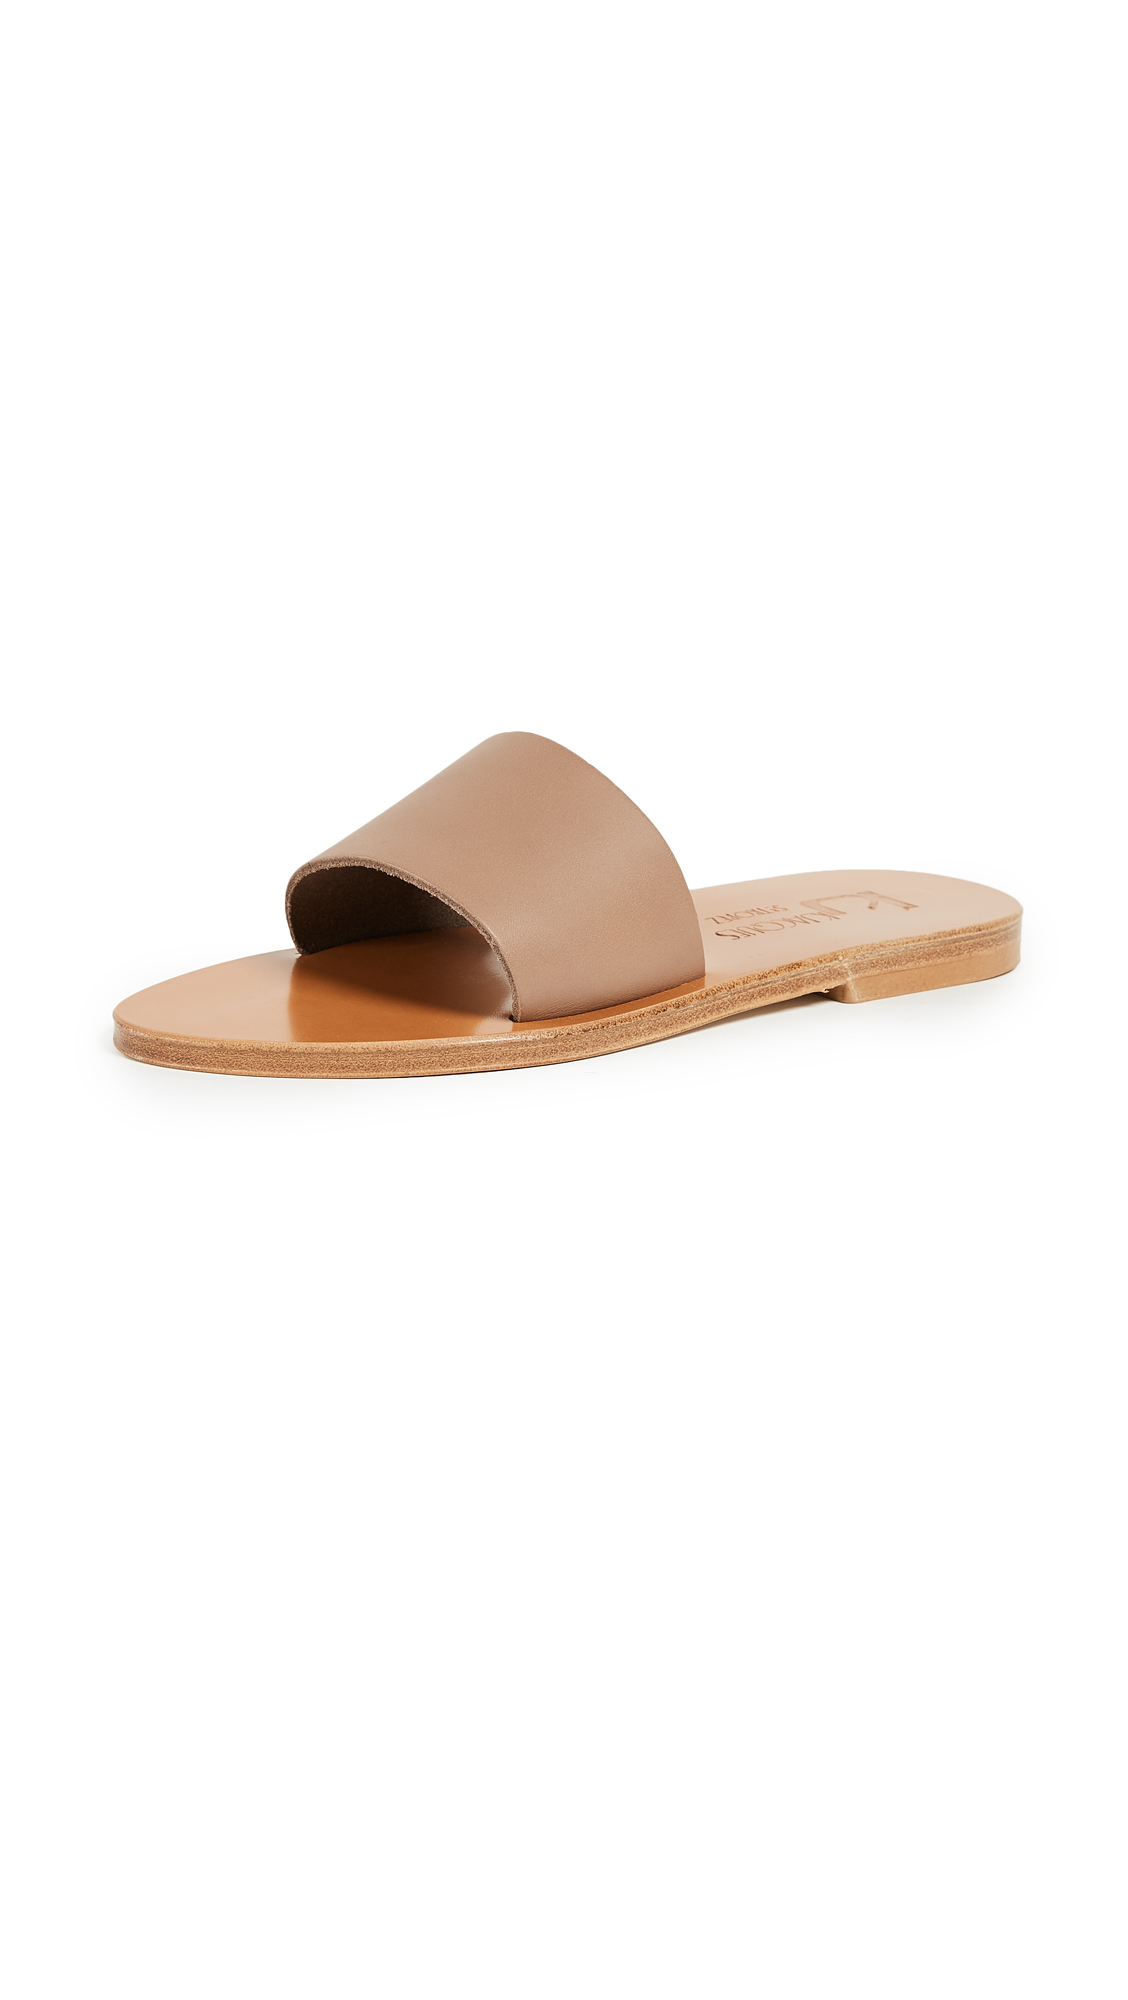 K. Jacques Arezzo Slides - Pul Taupe